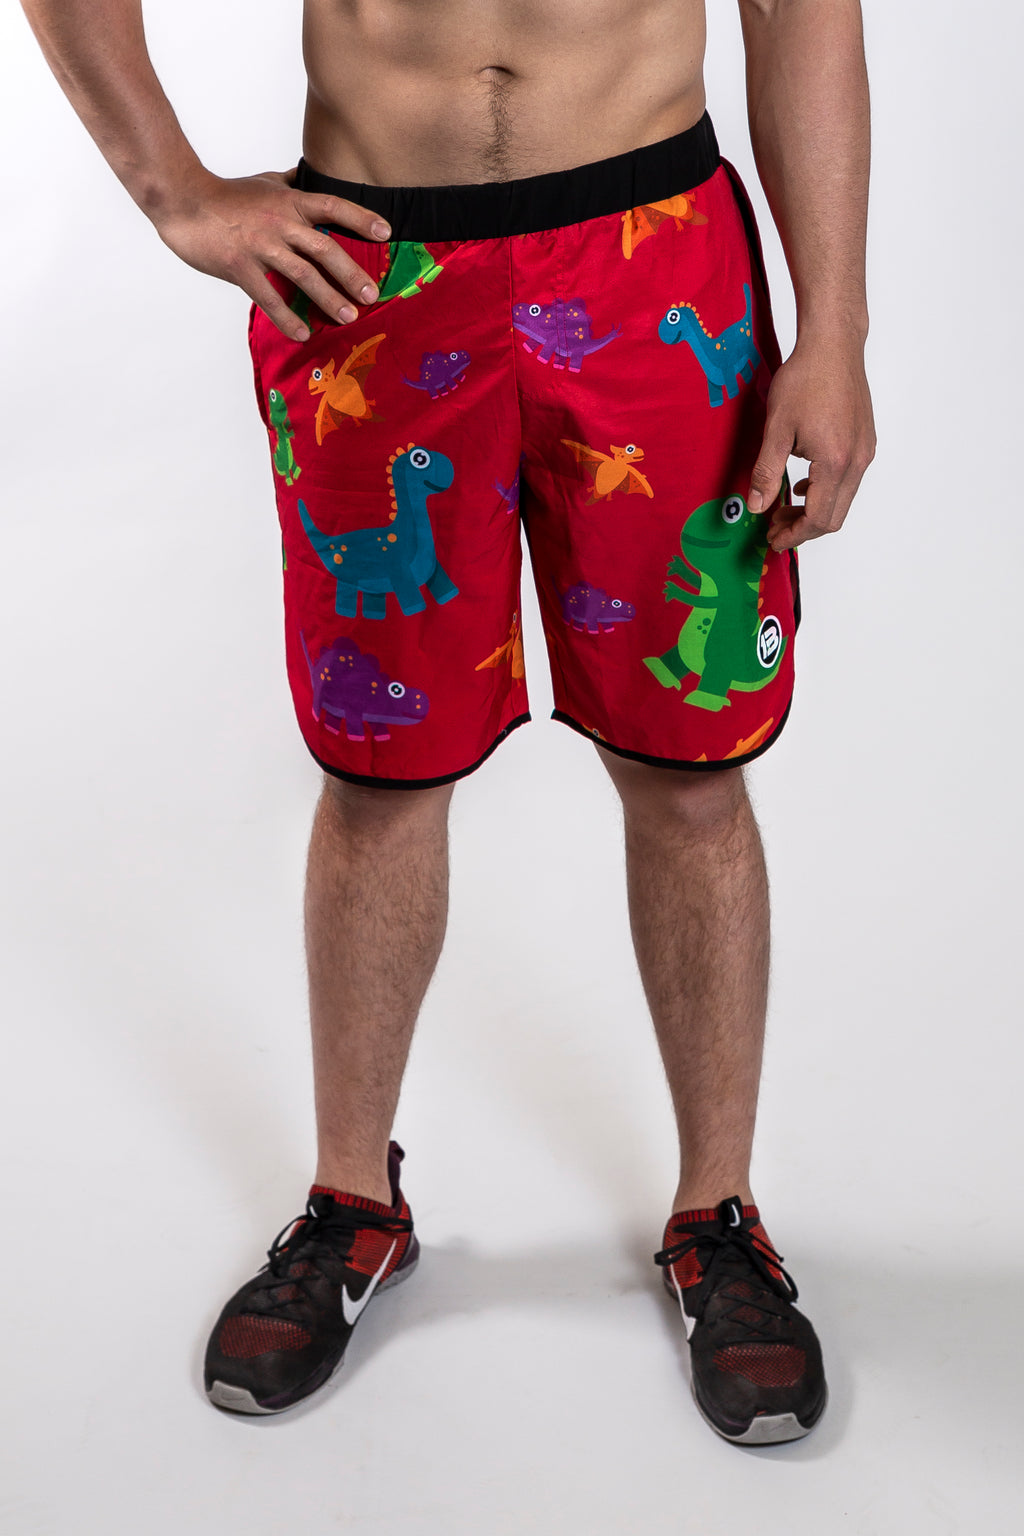 1PB - Dino Workout Shorts